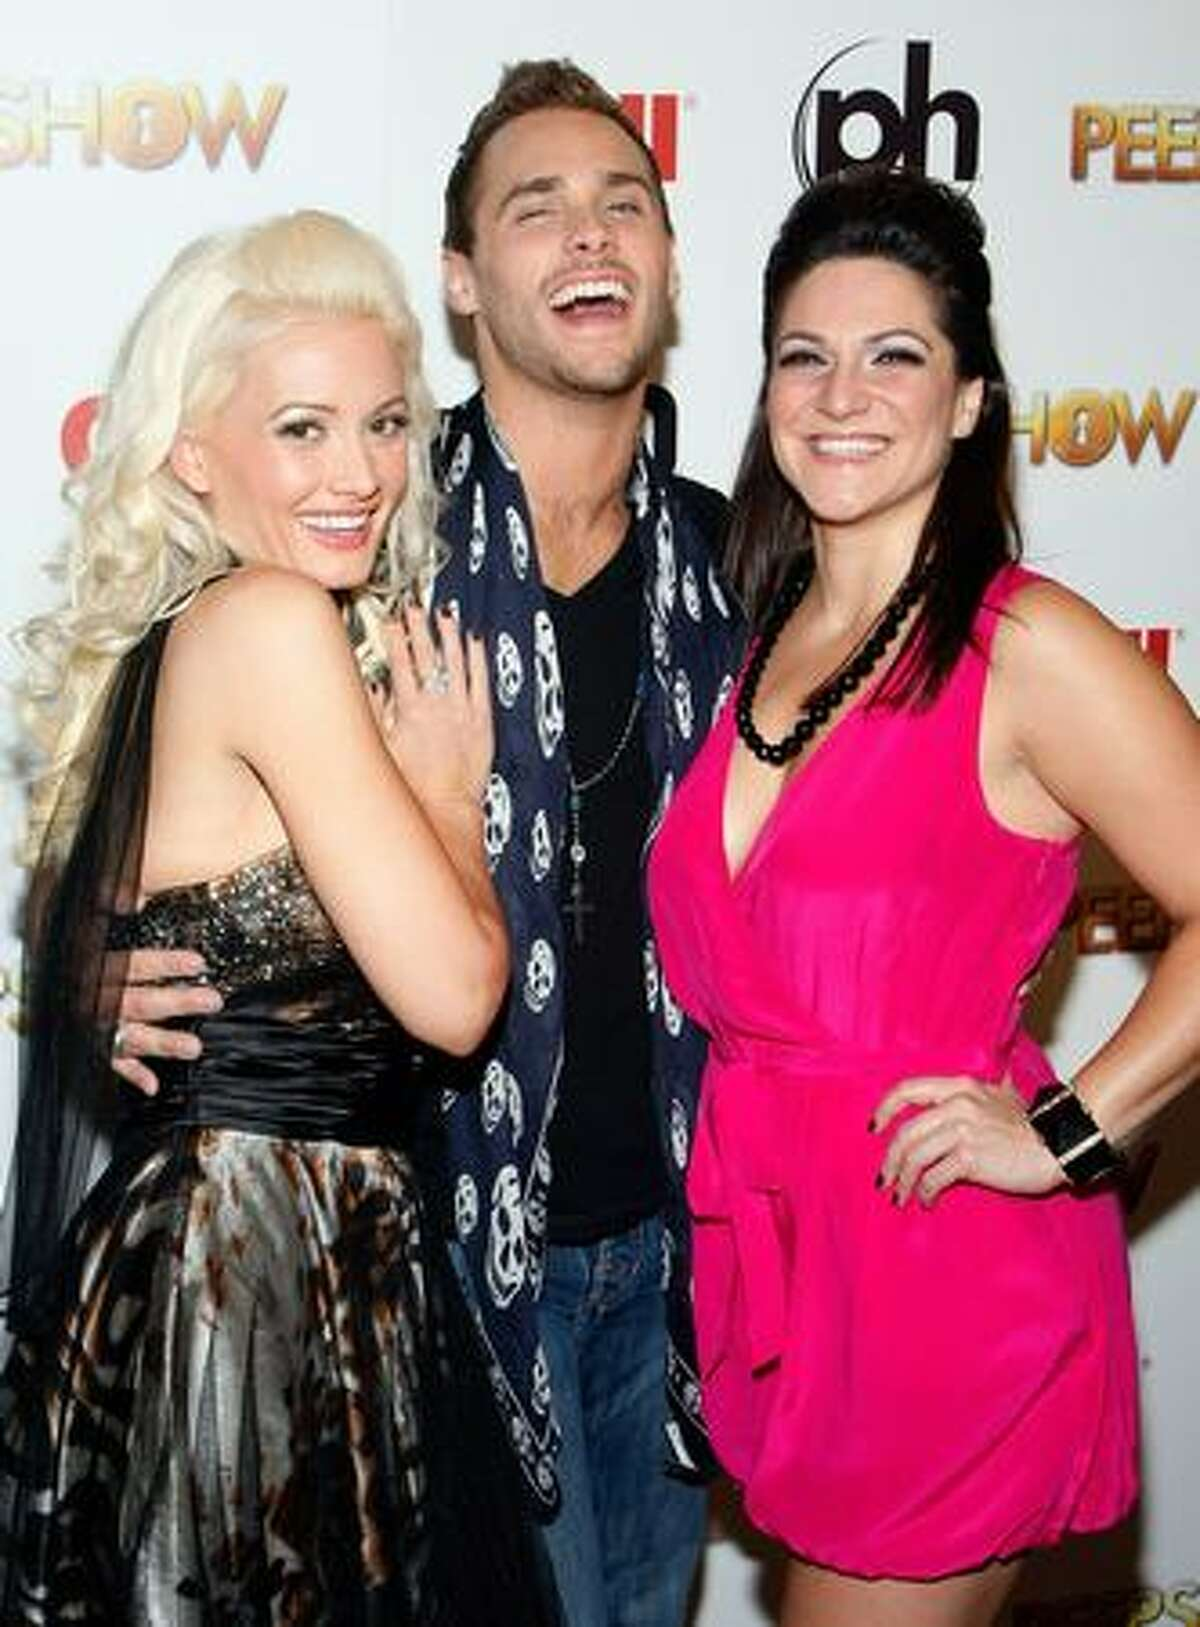 Television personality and model Holly Madison, singer Josh Strickland and actress Shoshana Bean appear at the after party for the adult production